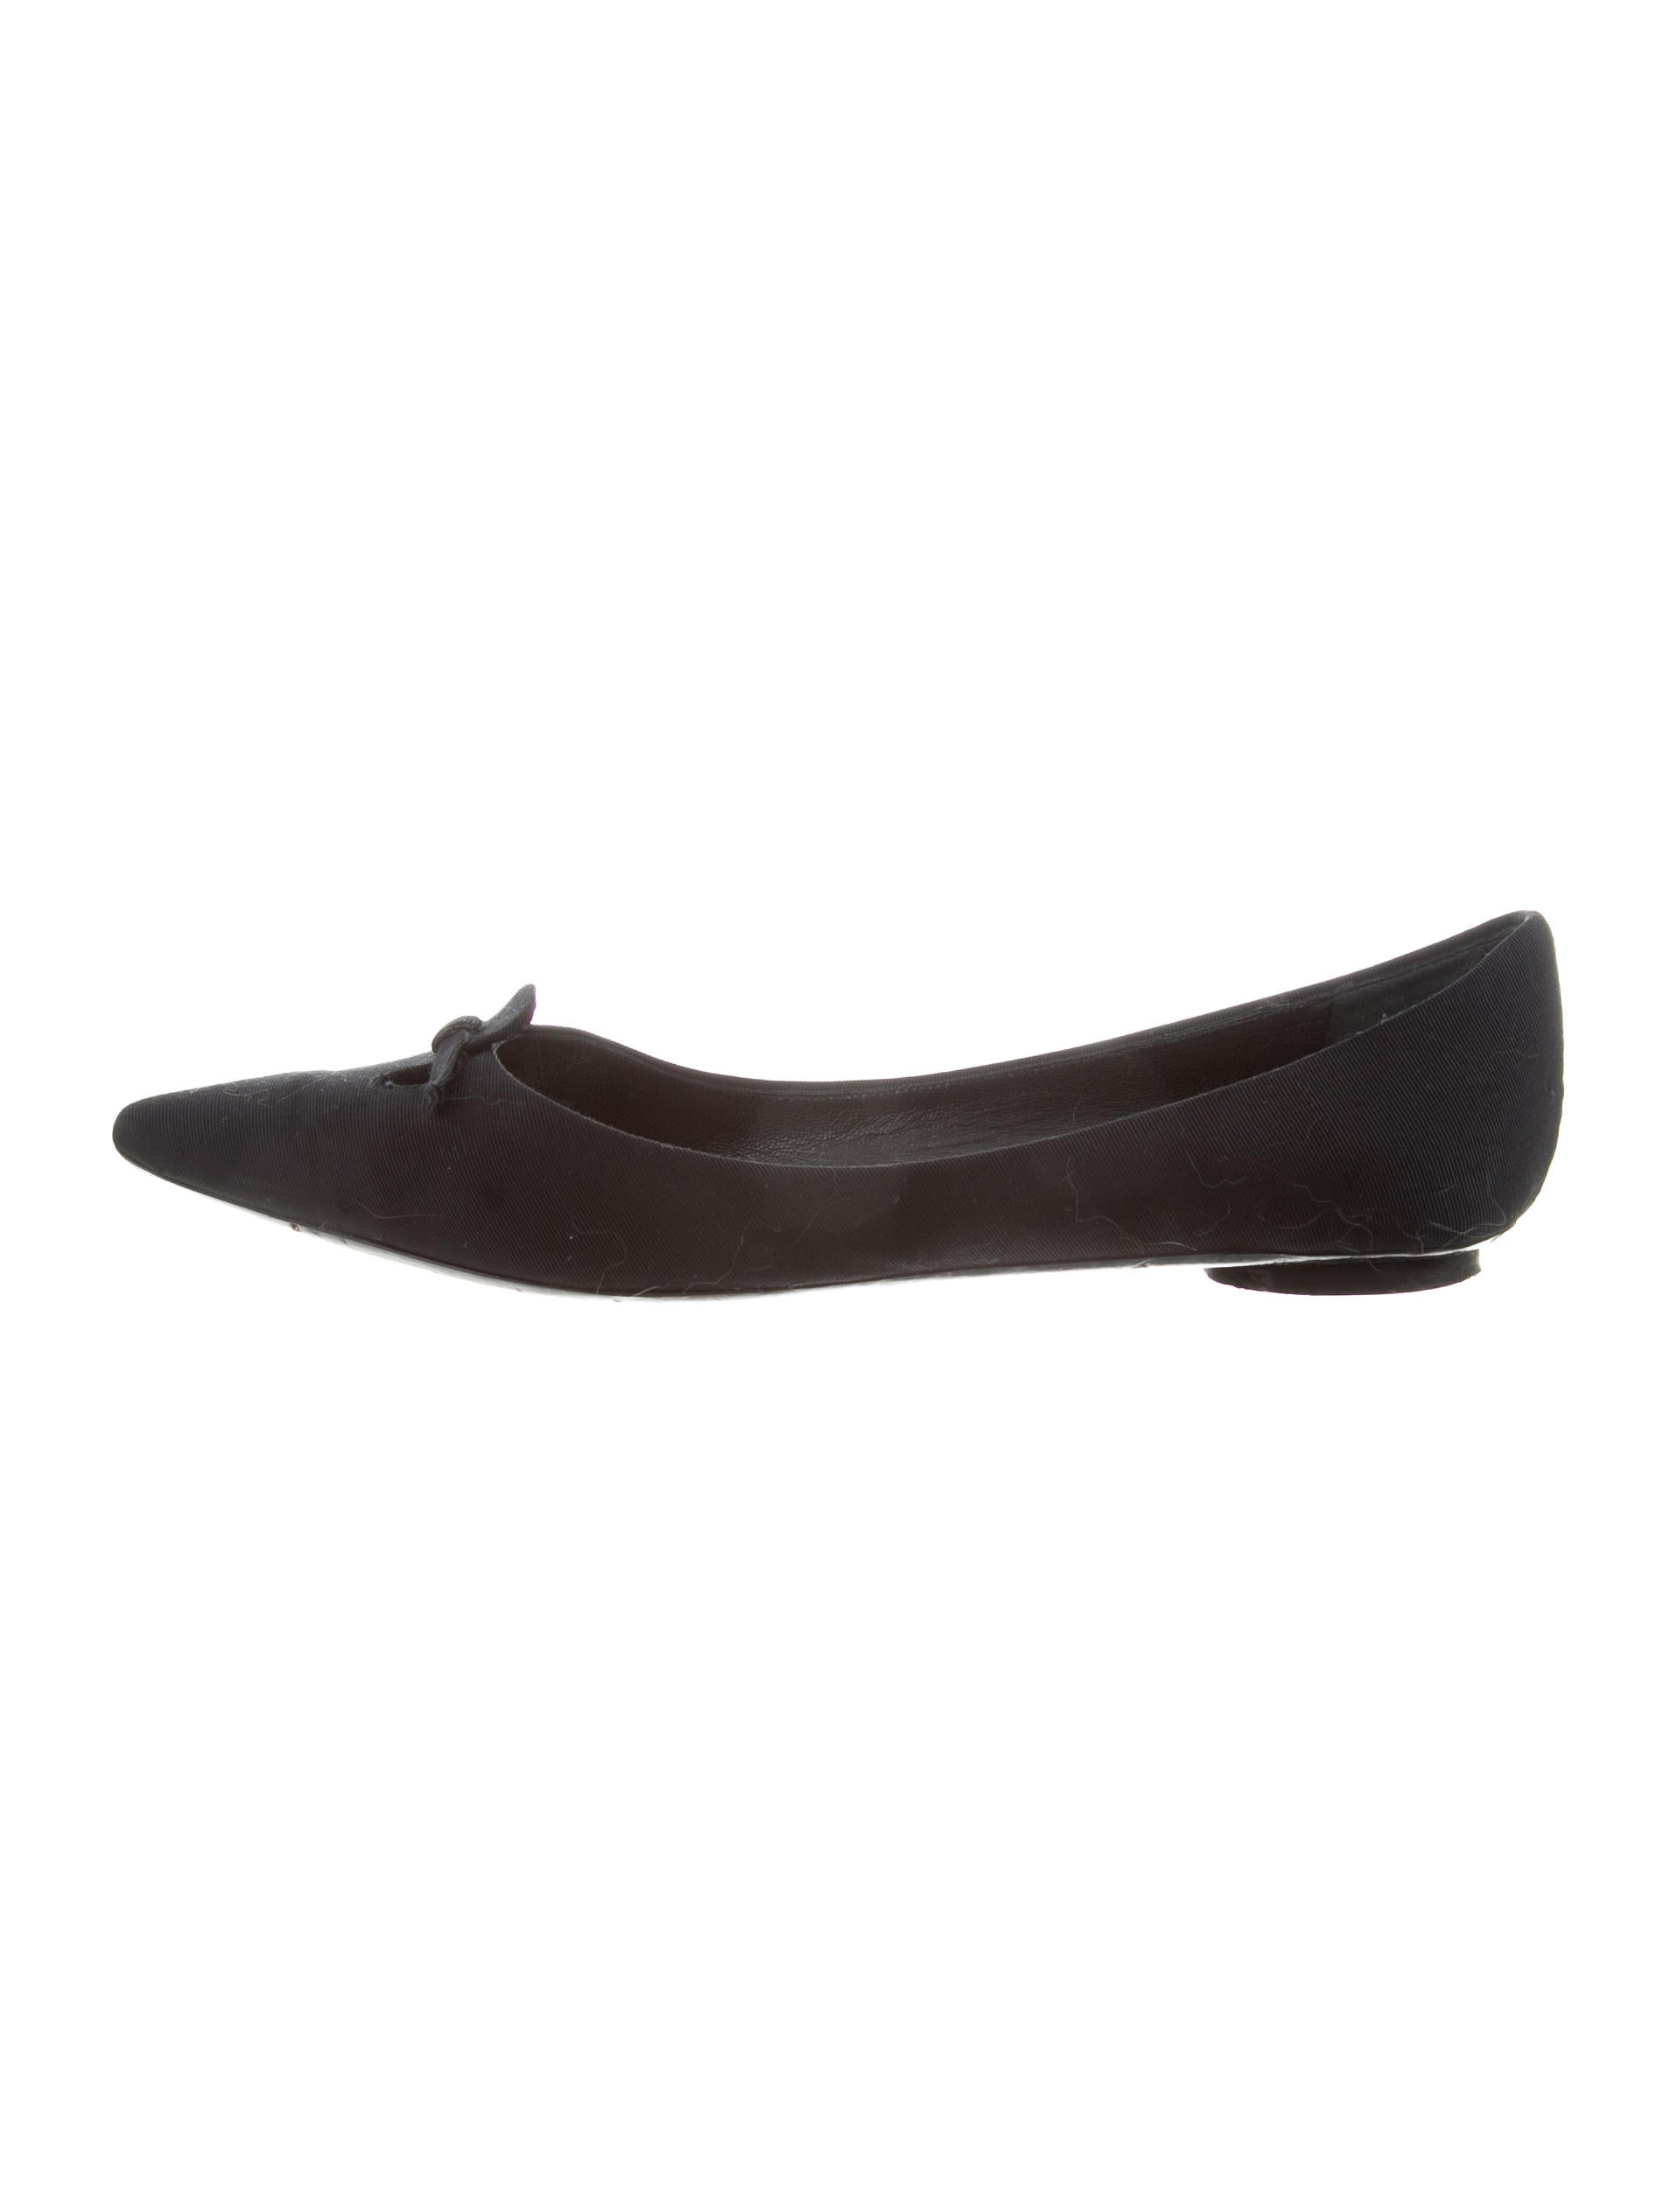 clearance find great Marc Jacobs Grosgrain Pointed-Toe Flats wide range of authentic cheap price L5fCYlW